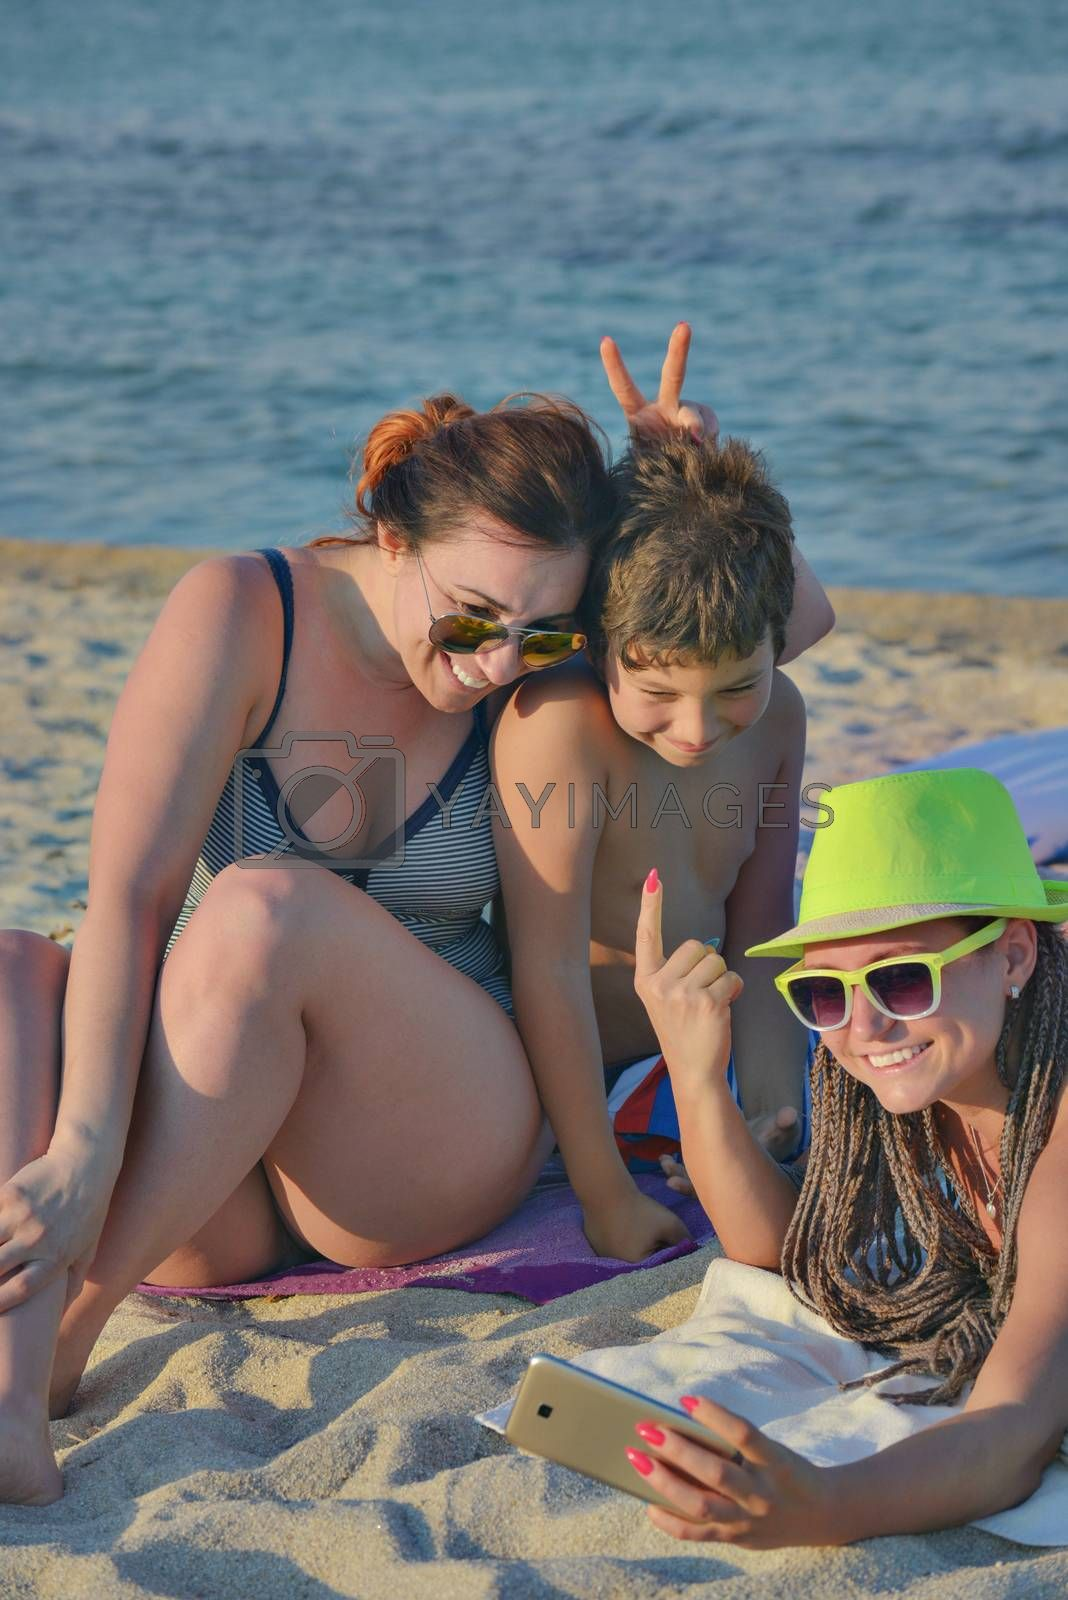 A group of three - two females and a kid are making funny rabbit ears selfie on a quiet beach.